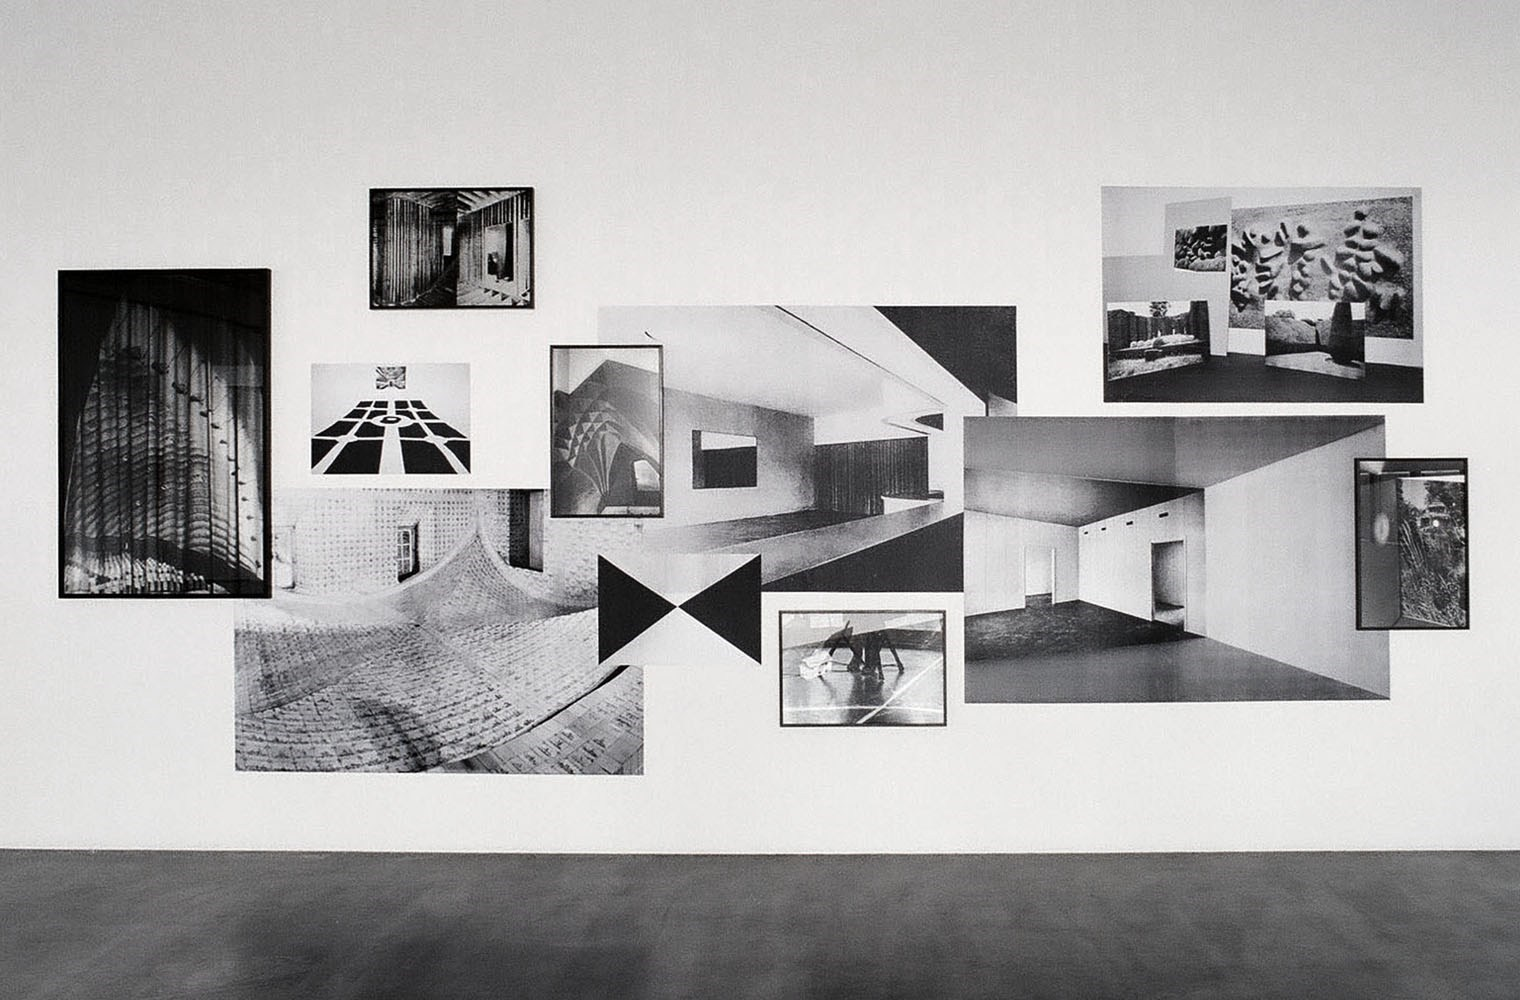 b&w prints and silver gelatin prints, dimensions variable, 2010<br />Installation view Wiels, Brussels